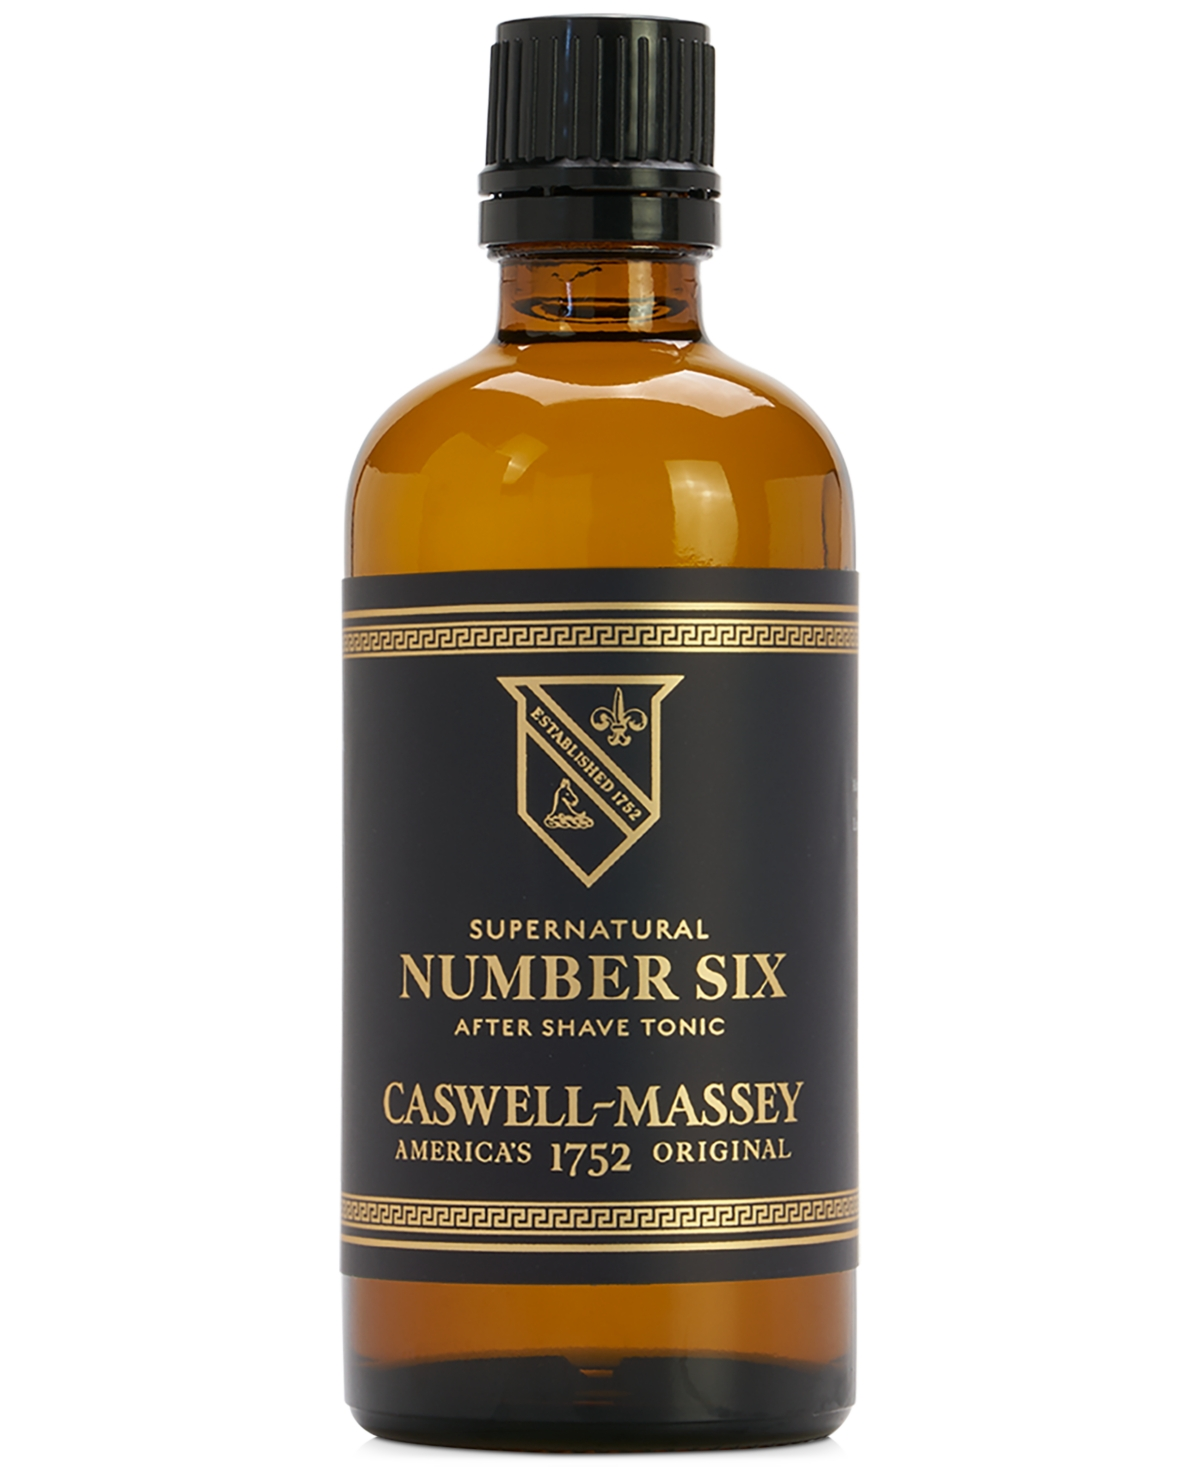 Caswell Massey Supernatural Number Six After Shave Tonic, 100 ml